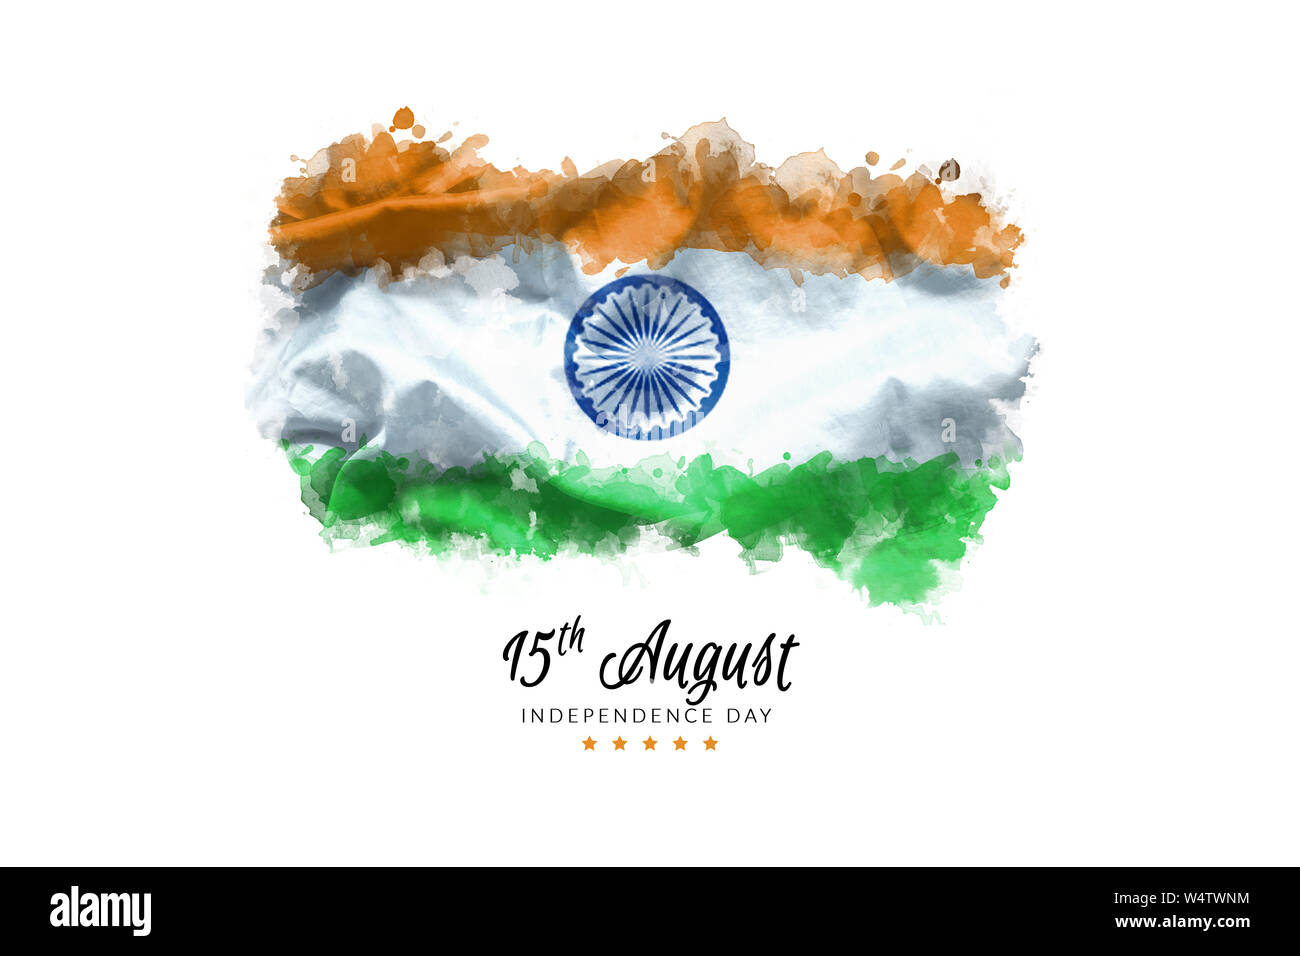 Indian Flag Background High Resolution Stock Photography And Images Alamy